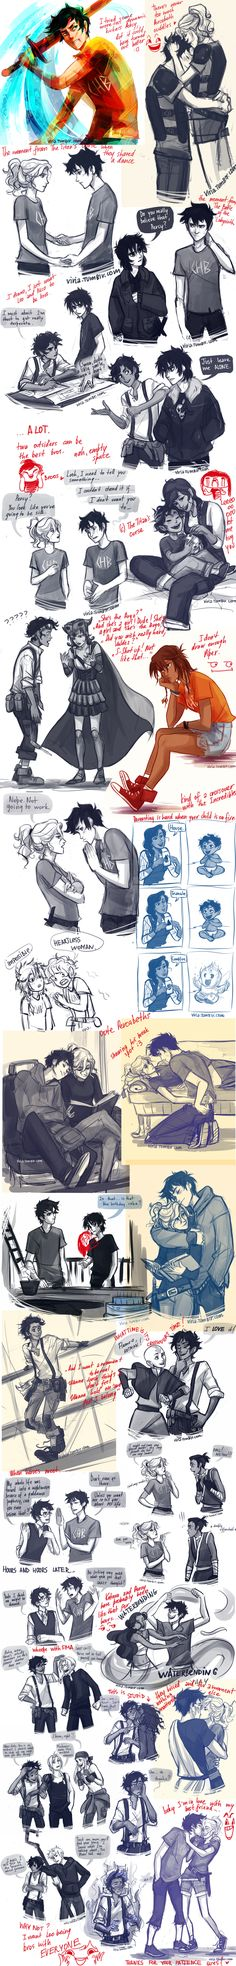 All time favorite Percy Jackson pin! This is incredible! And avatar and Jack Frost cross overs! I wish so badly that I could draw like this! and OMG PERCABETH Percy Jackson Memes, Percy Jackson Books, Percy Jackson Fandom, Viria Percy Jackson, Percabeth, Solangelo, Fanart, Oncle Rick, All The Bright Places